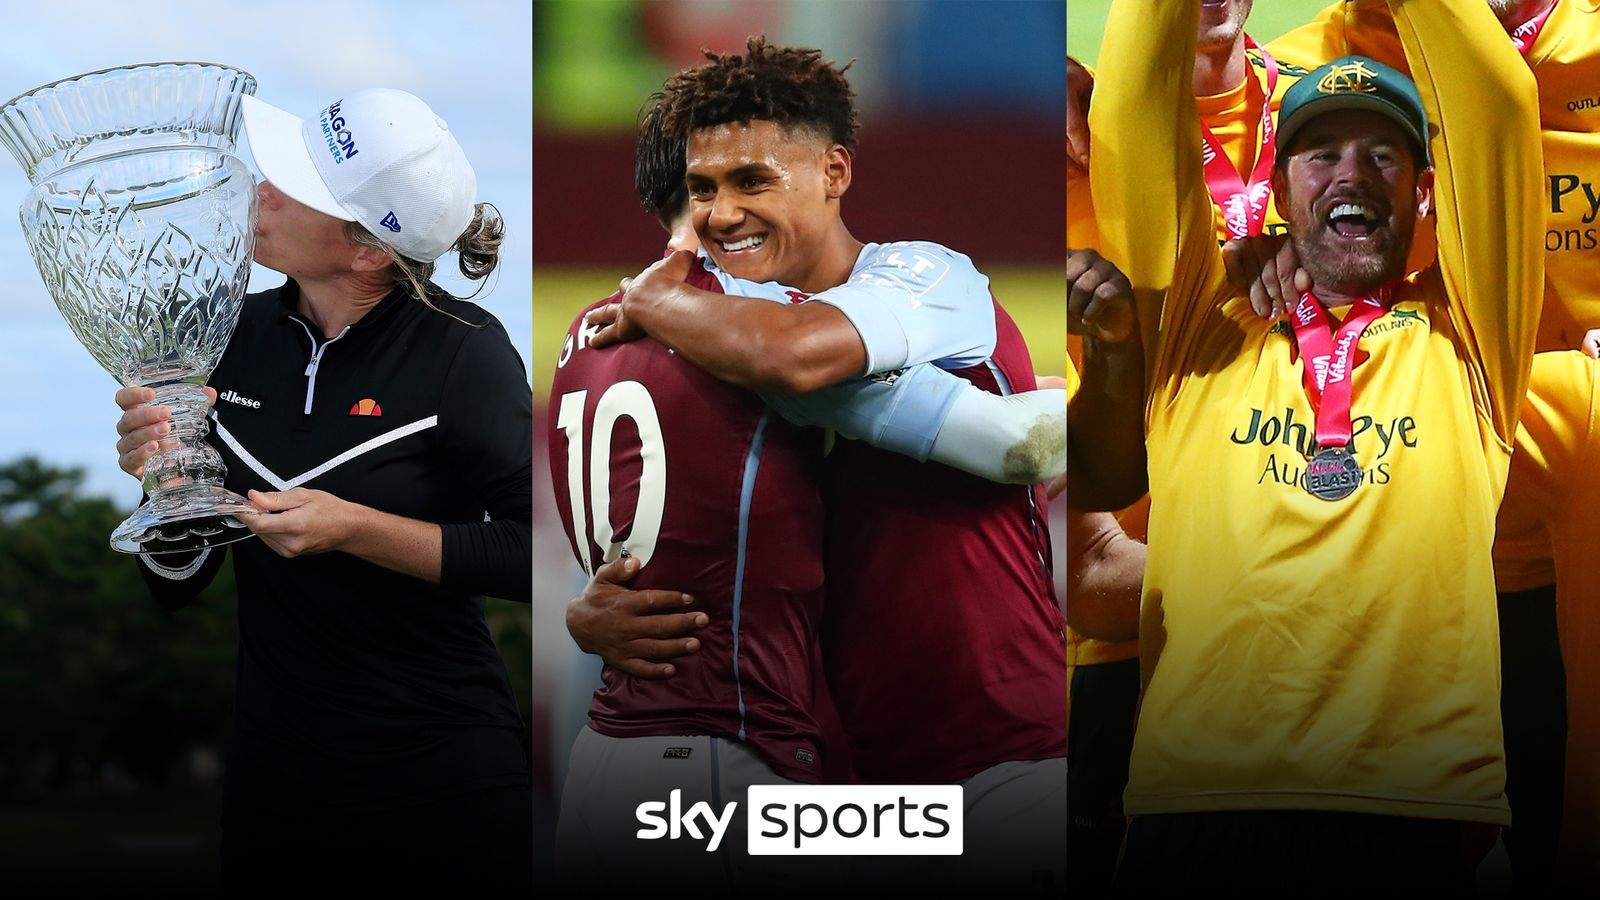 Sky Sports viewing: More than 14m people watch on network's best ever day